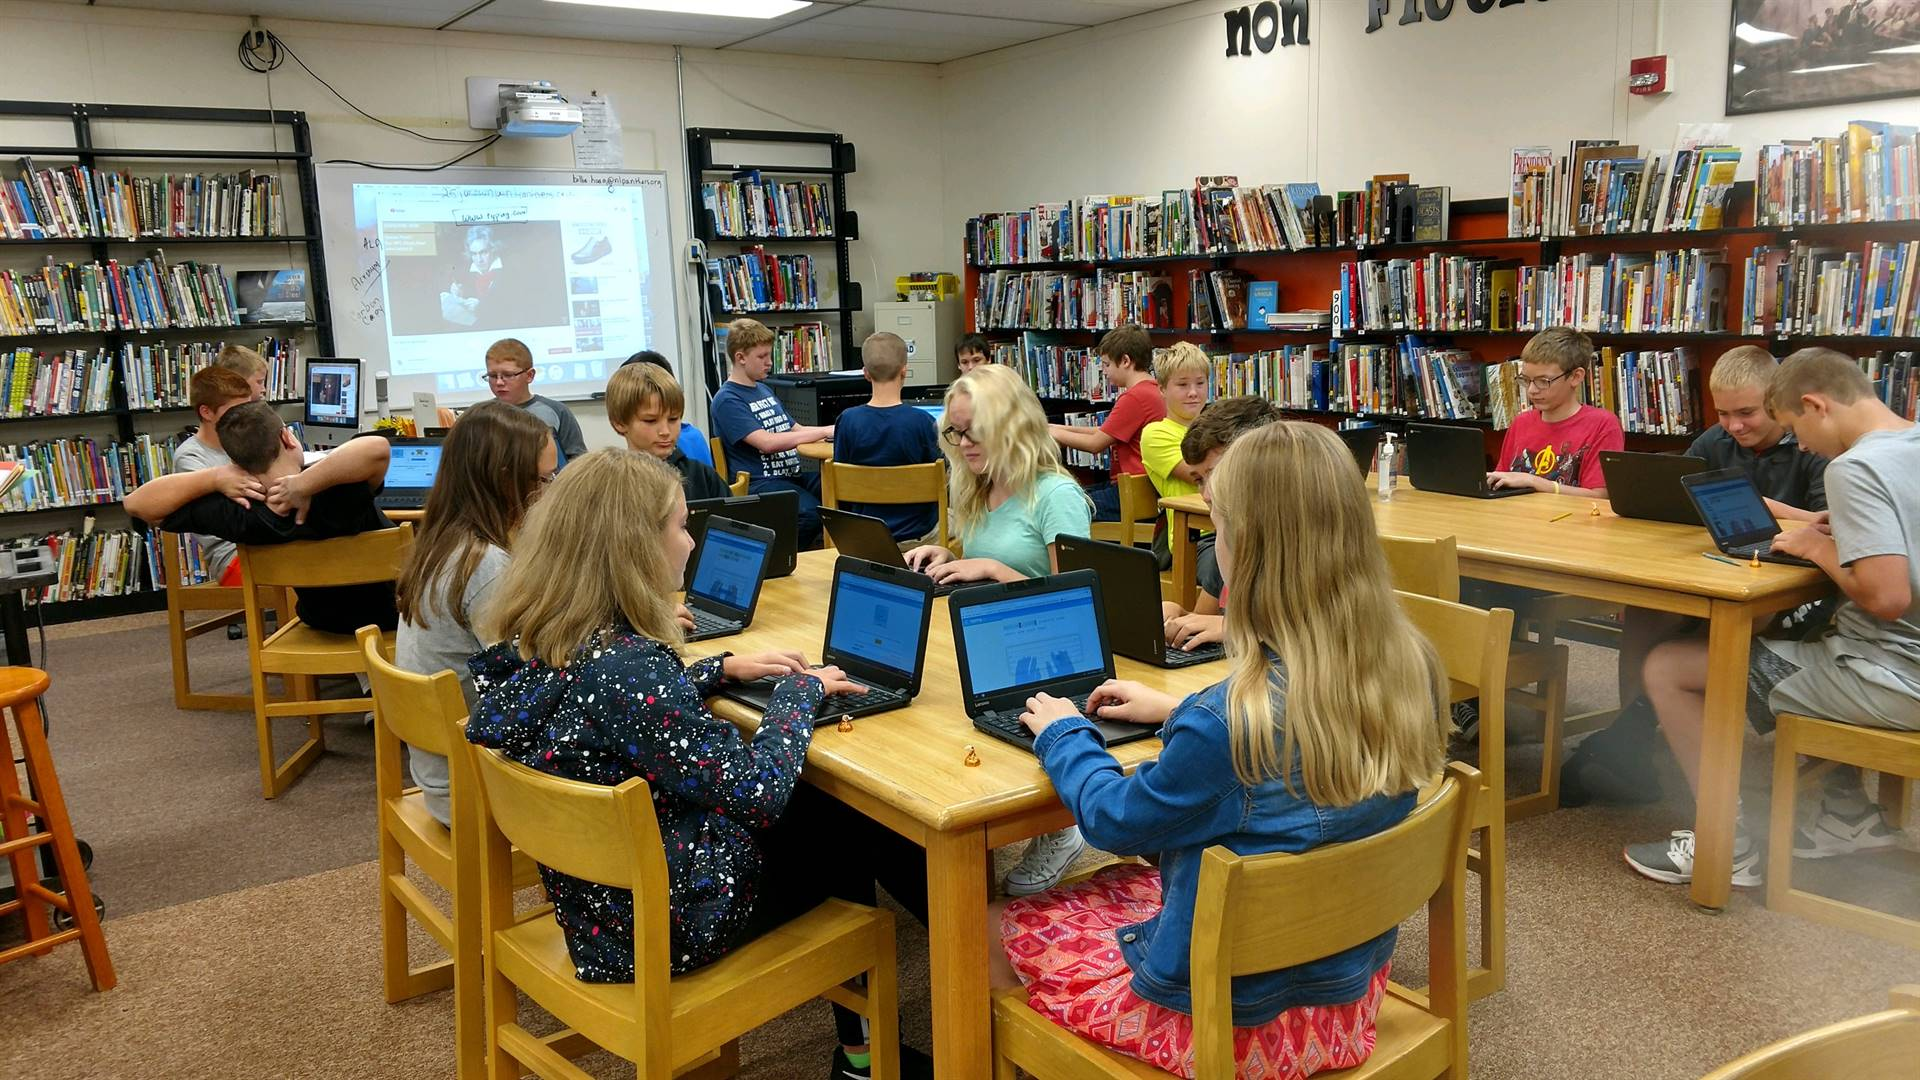 Learning Tech Skills in the Media Center